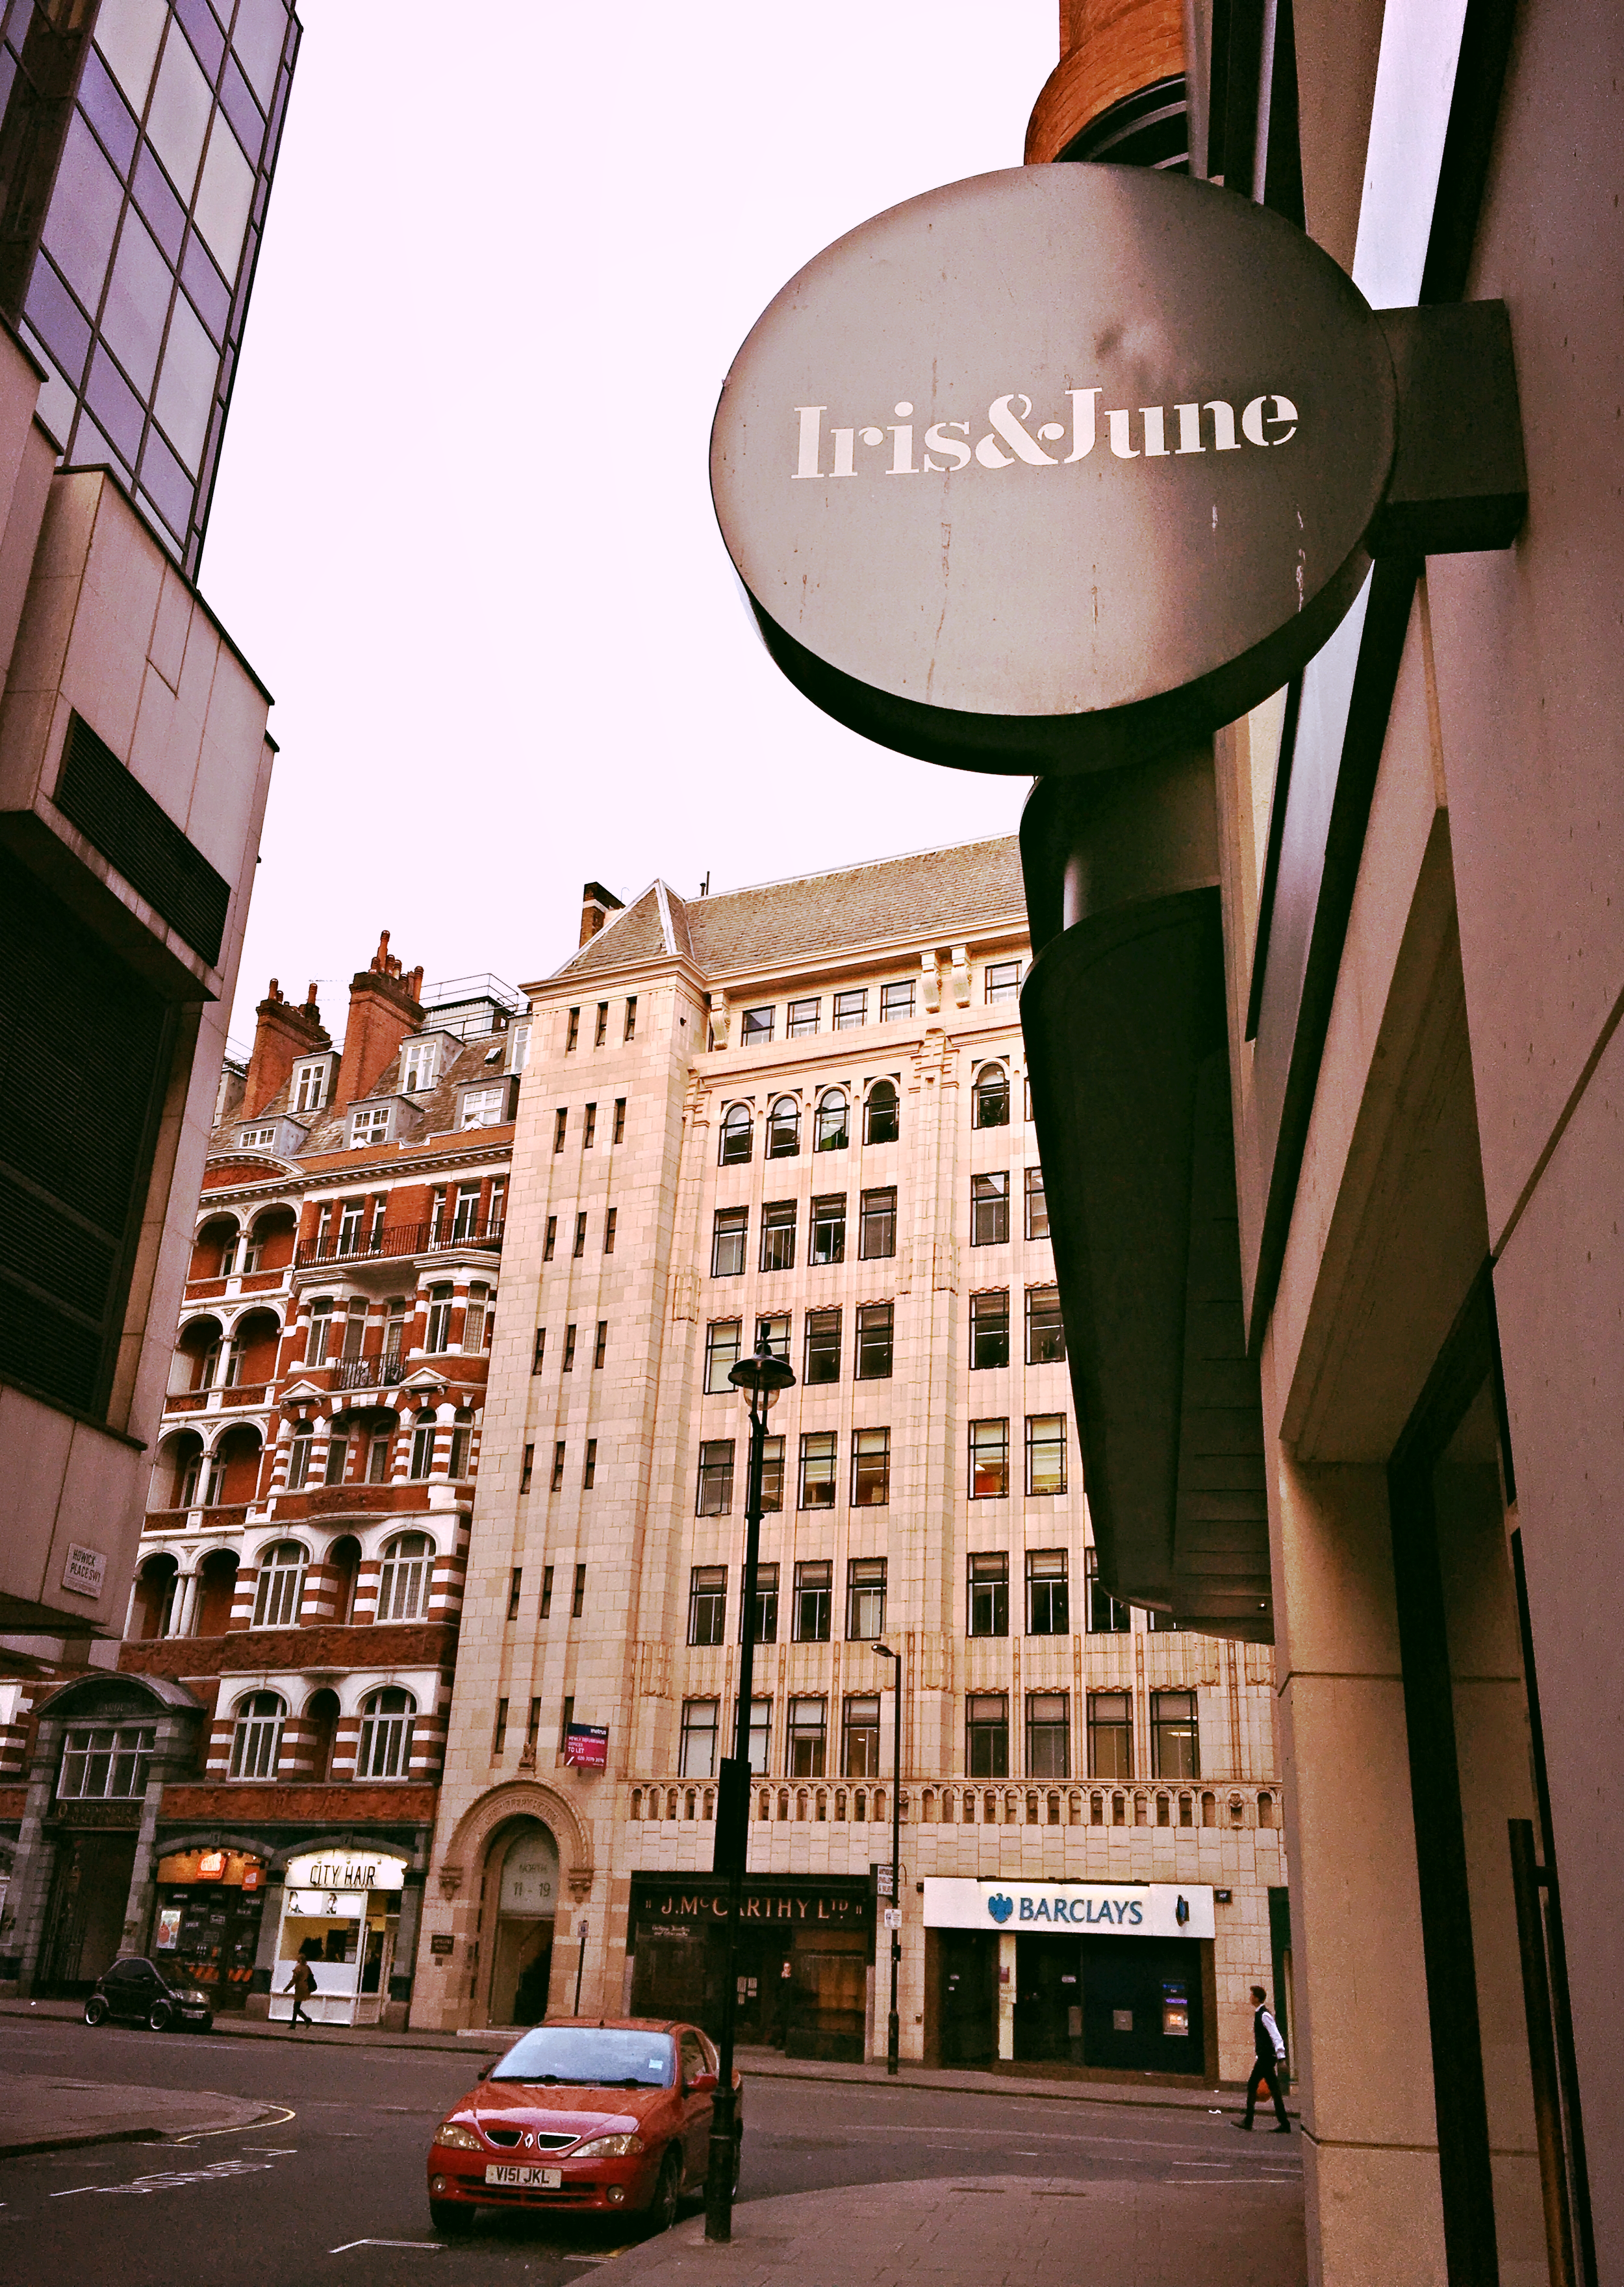 The cafe is opposite the back entrance of House of Fraser department store. (Image: Eileen Hsieh)